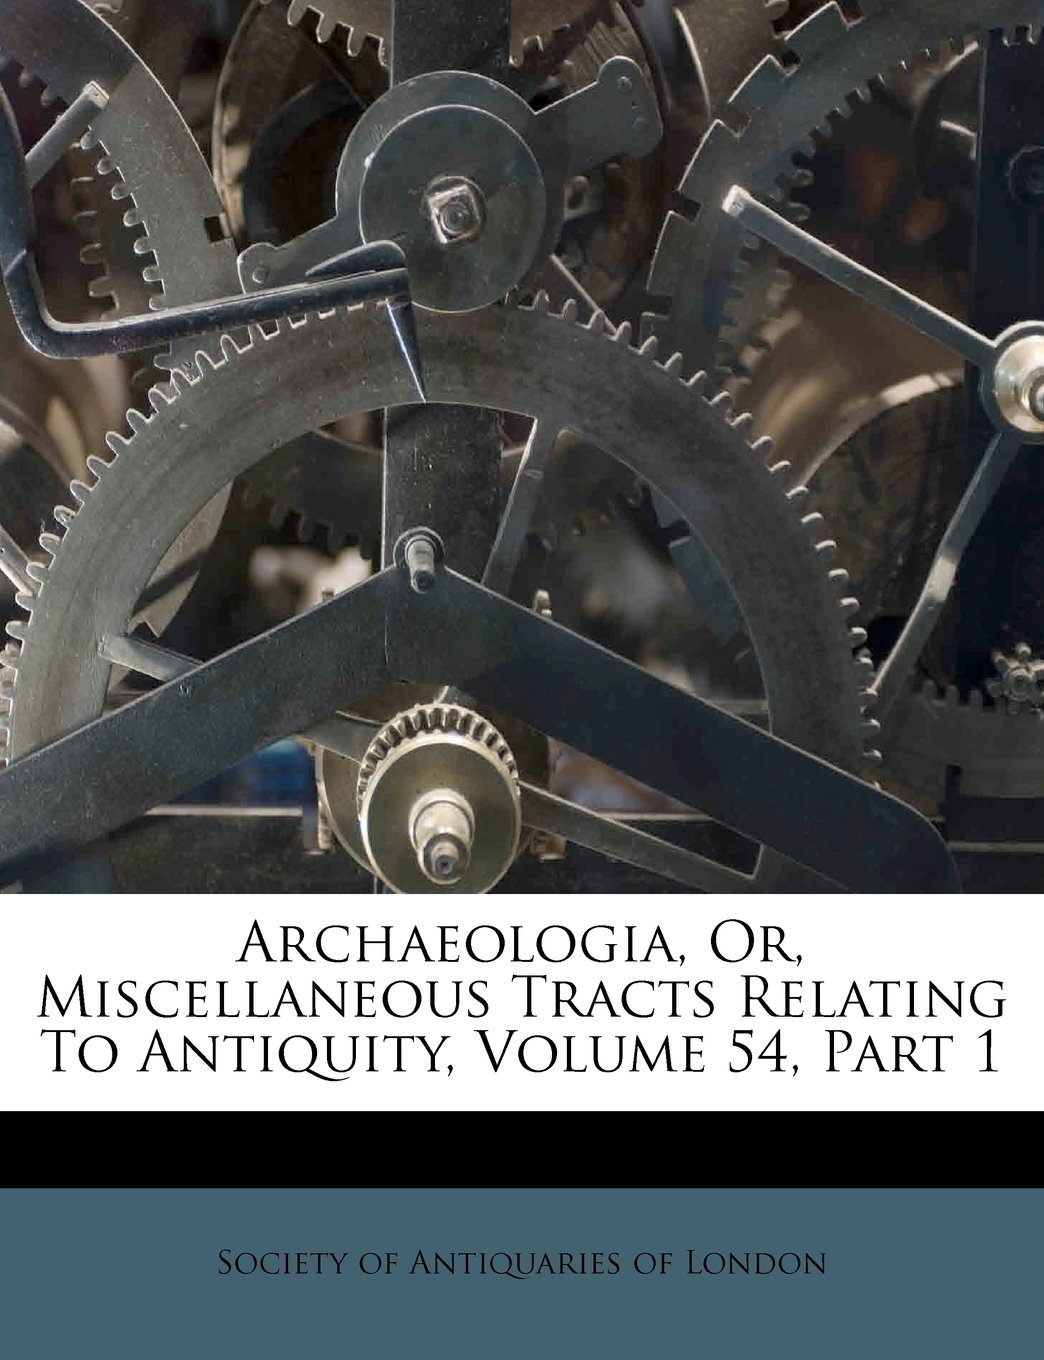 Archaeologia, Or, Miscellaneous Tracts Relating To Antiquity, Volume 54, Part 1 PDF